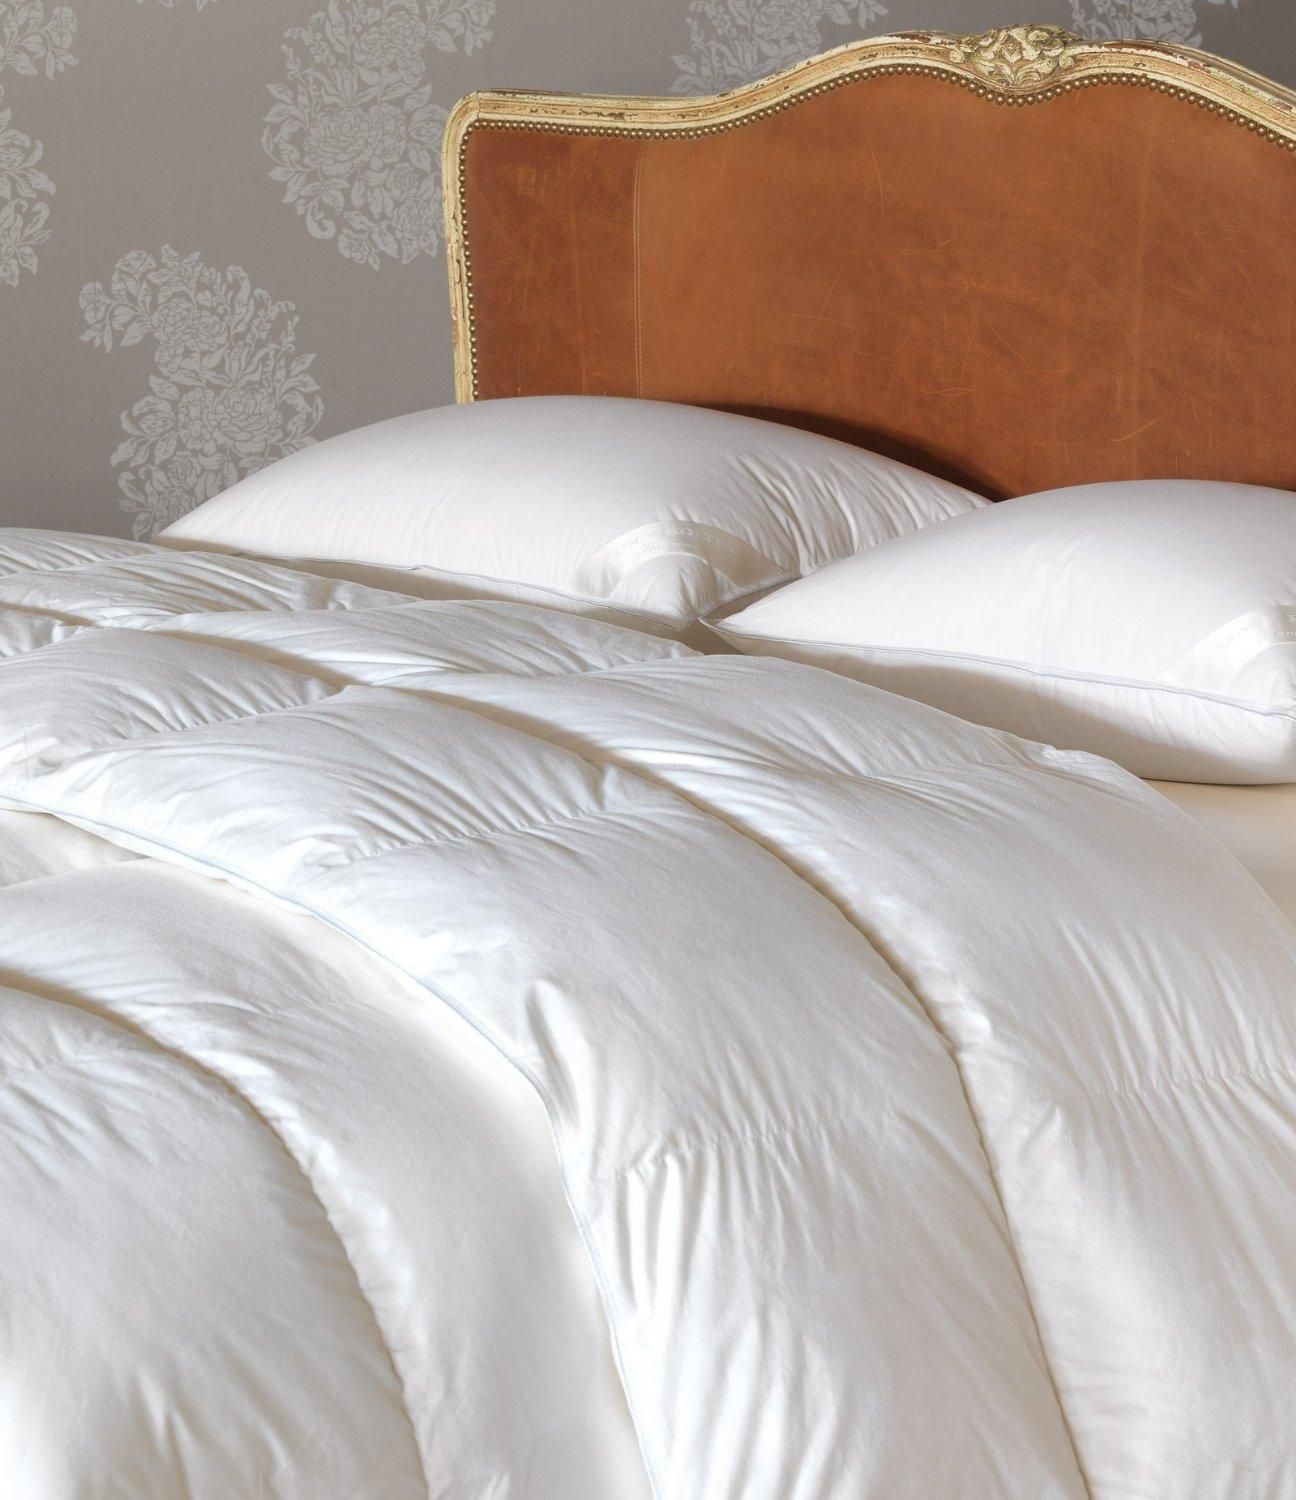 $427.44 Nancy Koltes Ravenna Light Weight 700 Fill Power Prestige Down HEFEL Noble Sateen Comforter, King